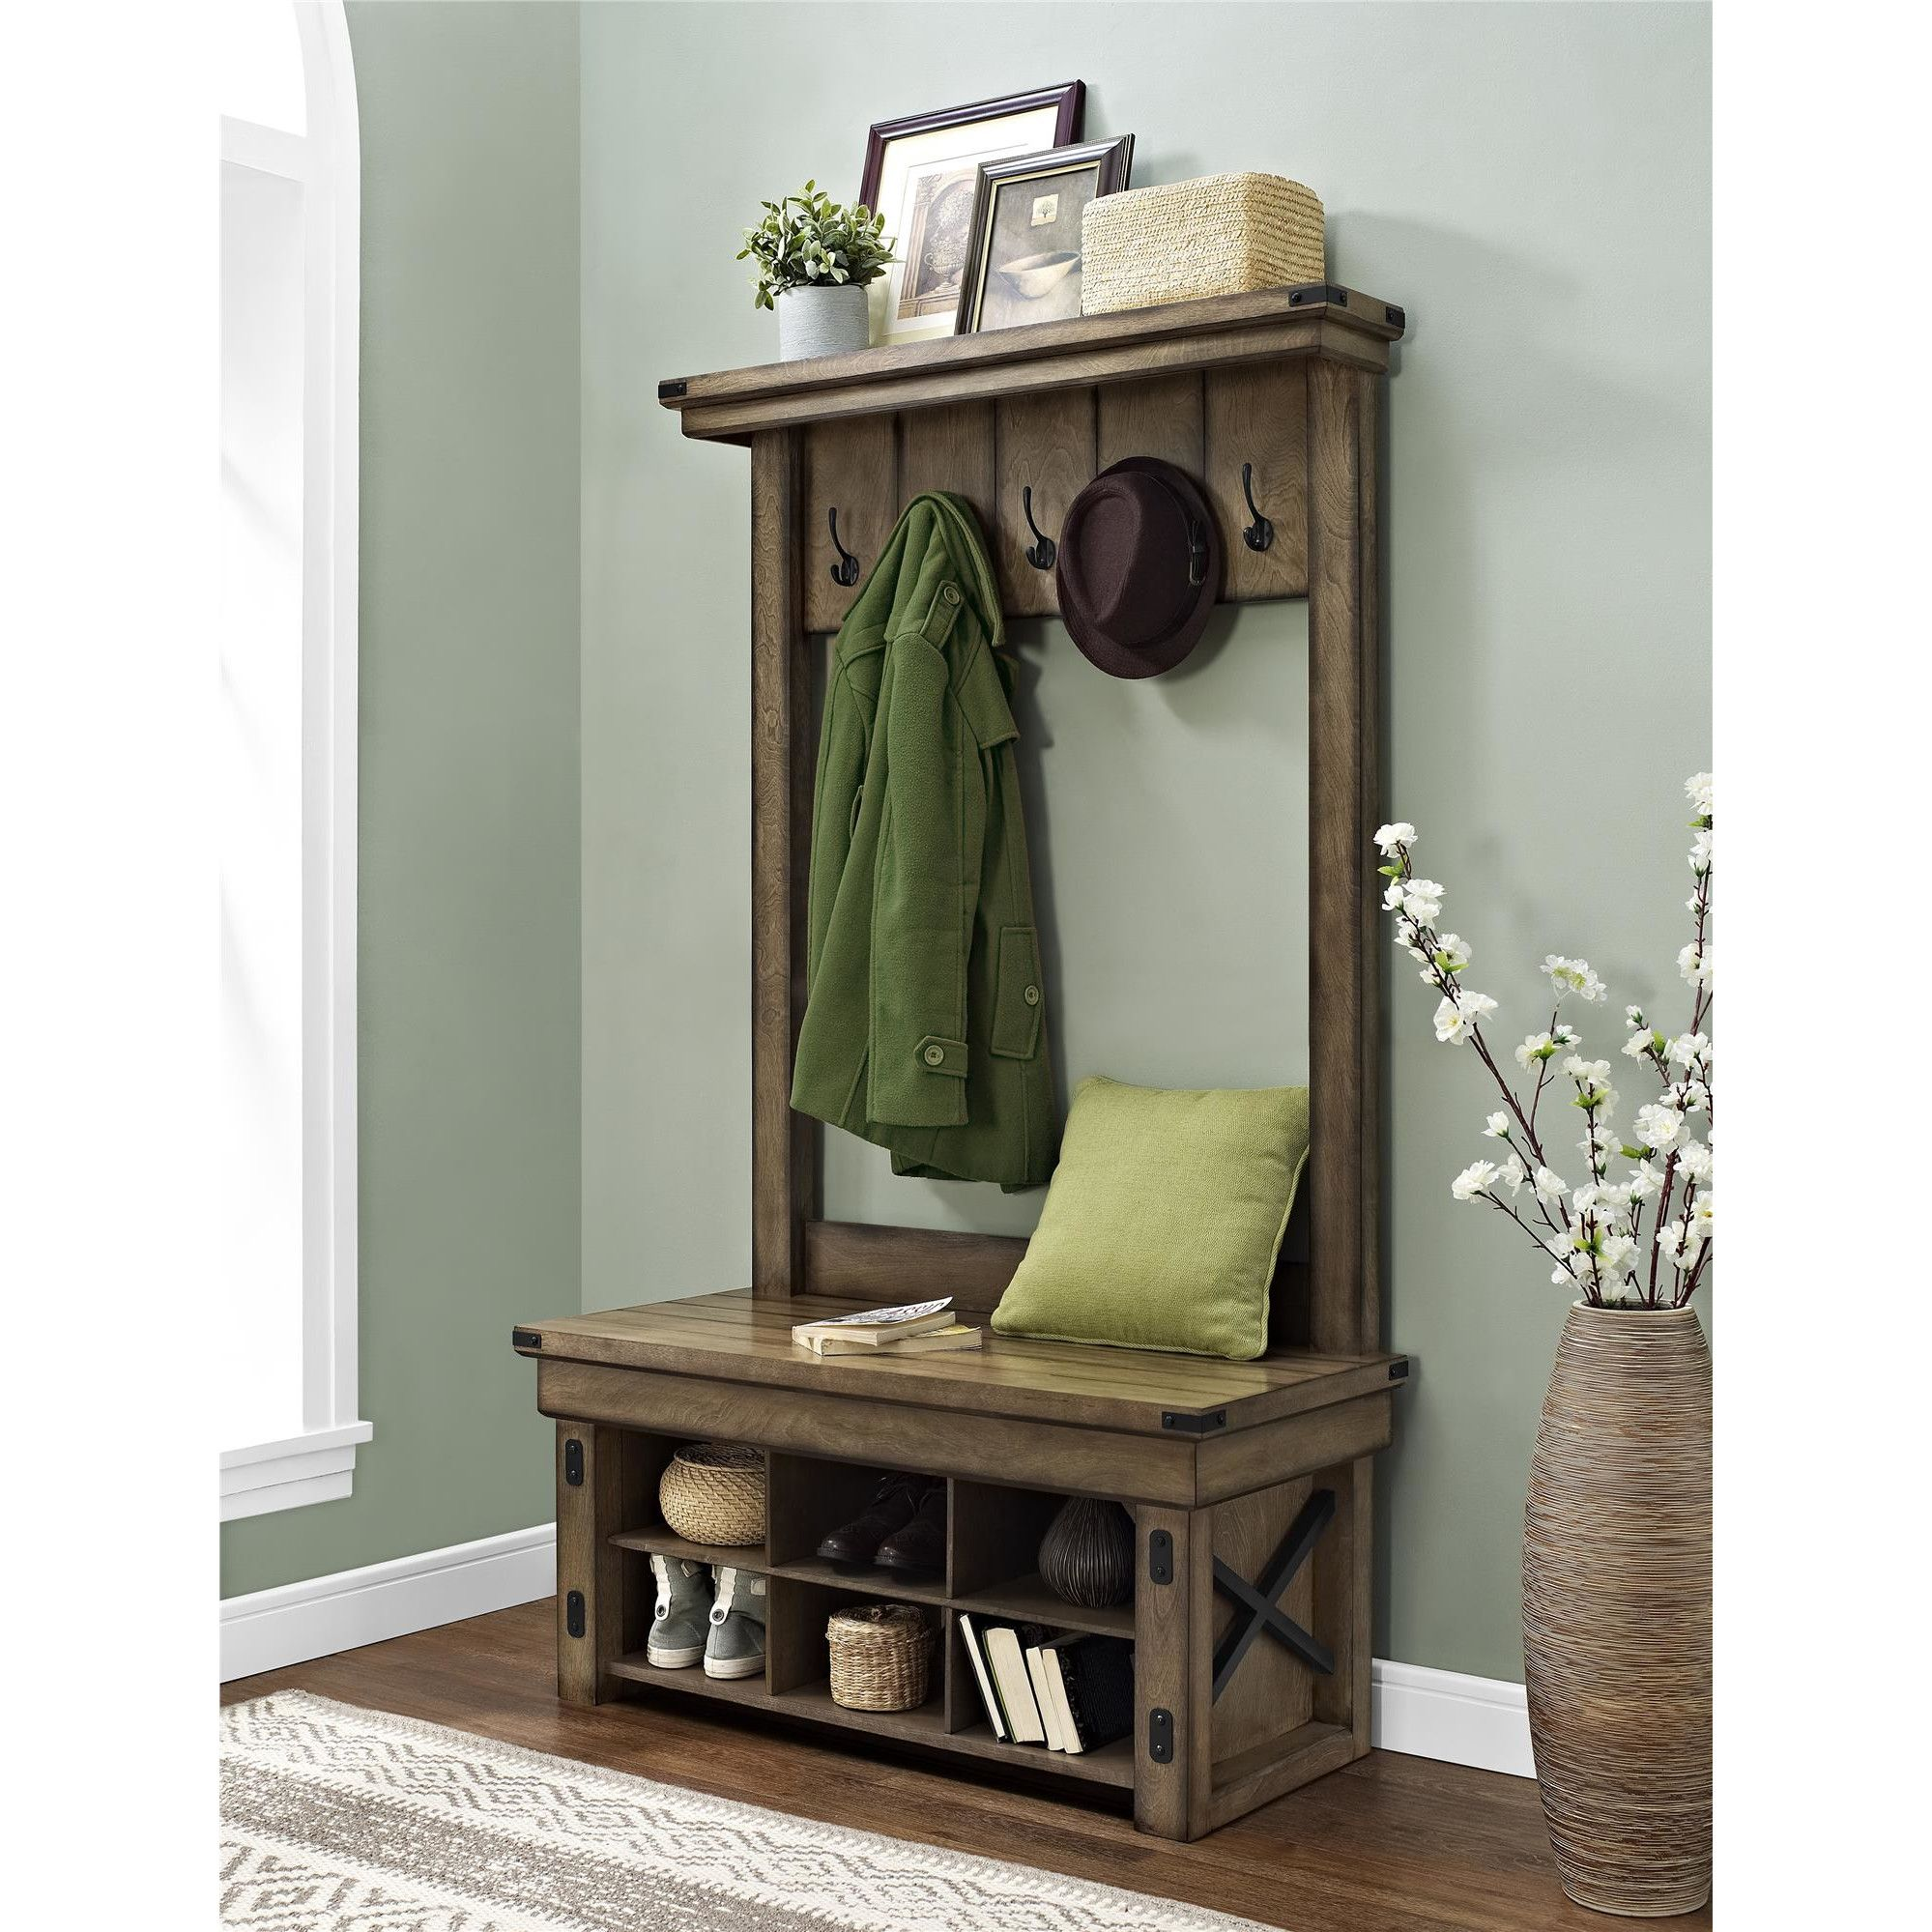 August grove irwin wood veneer entryway hall tree with storage bench